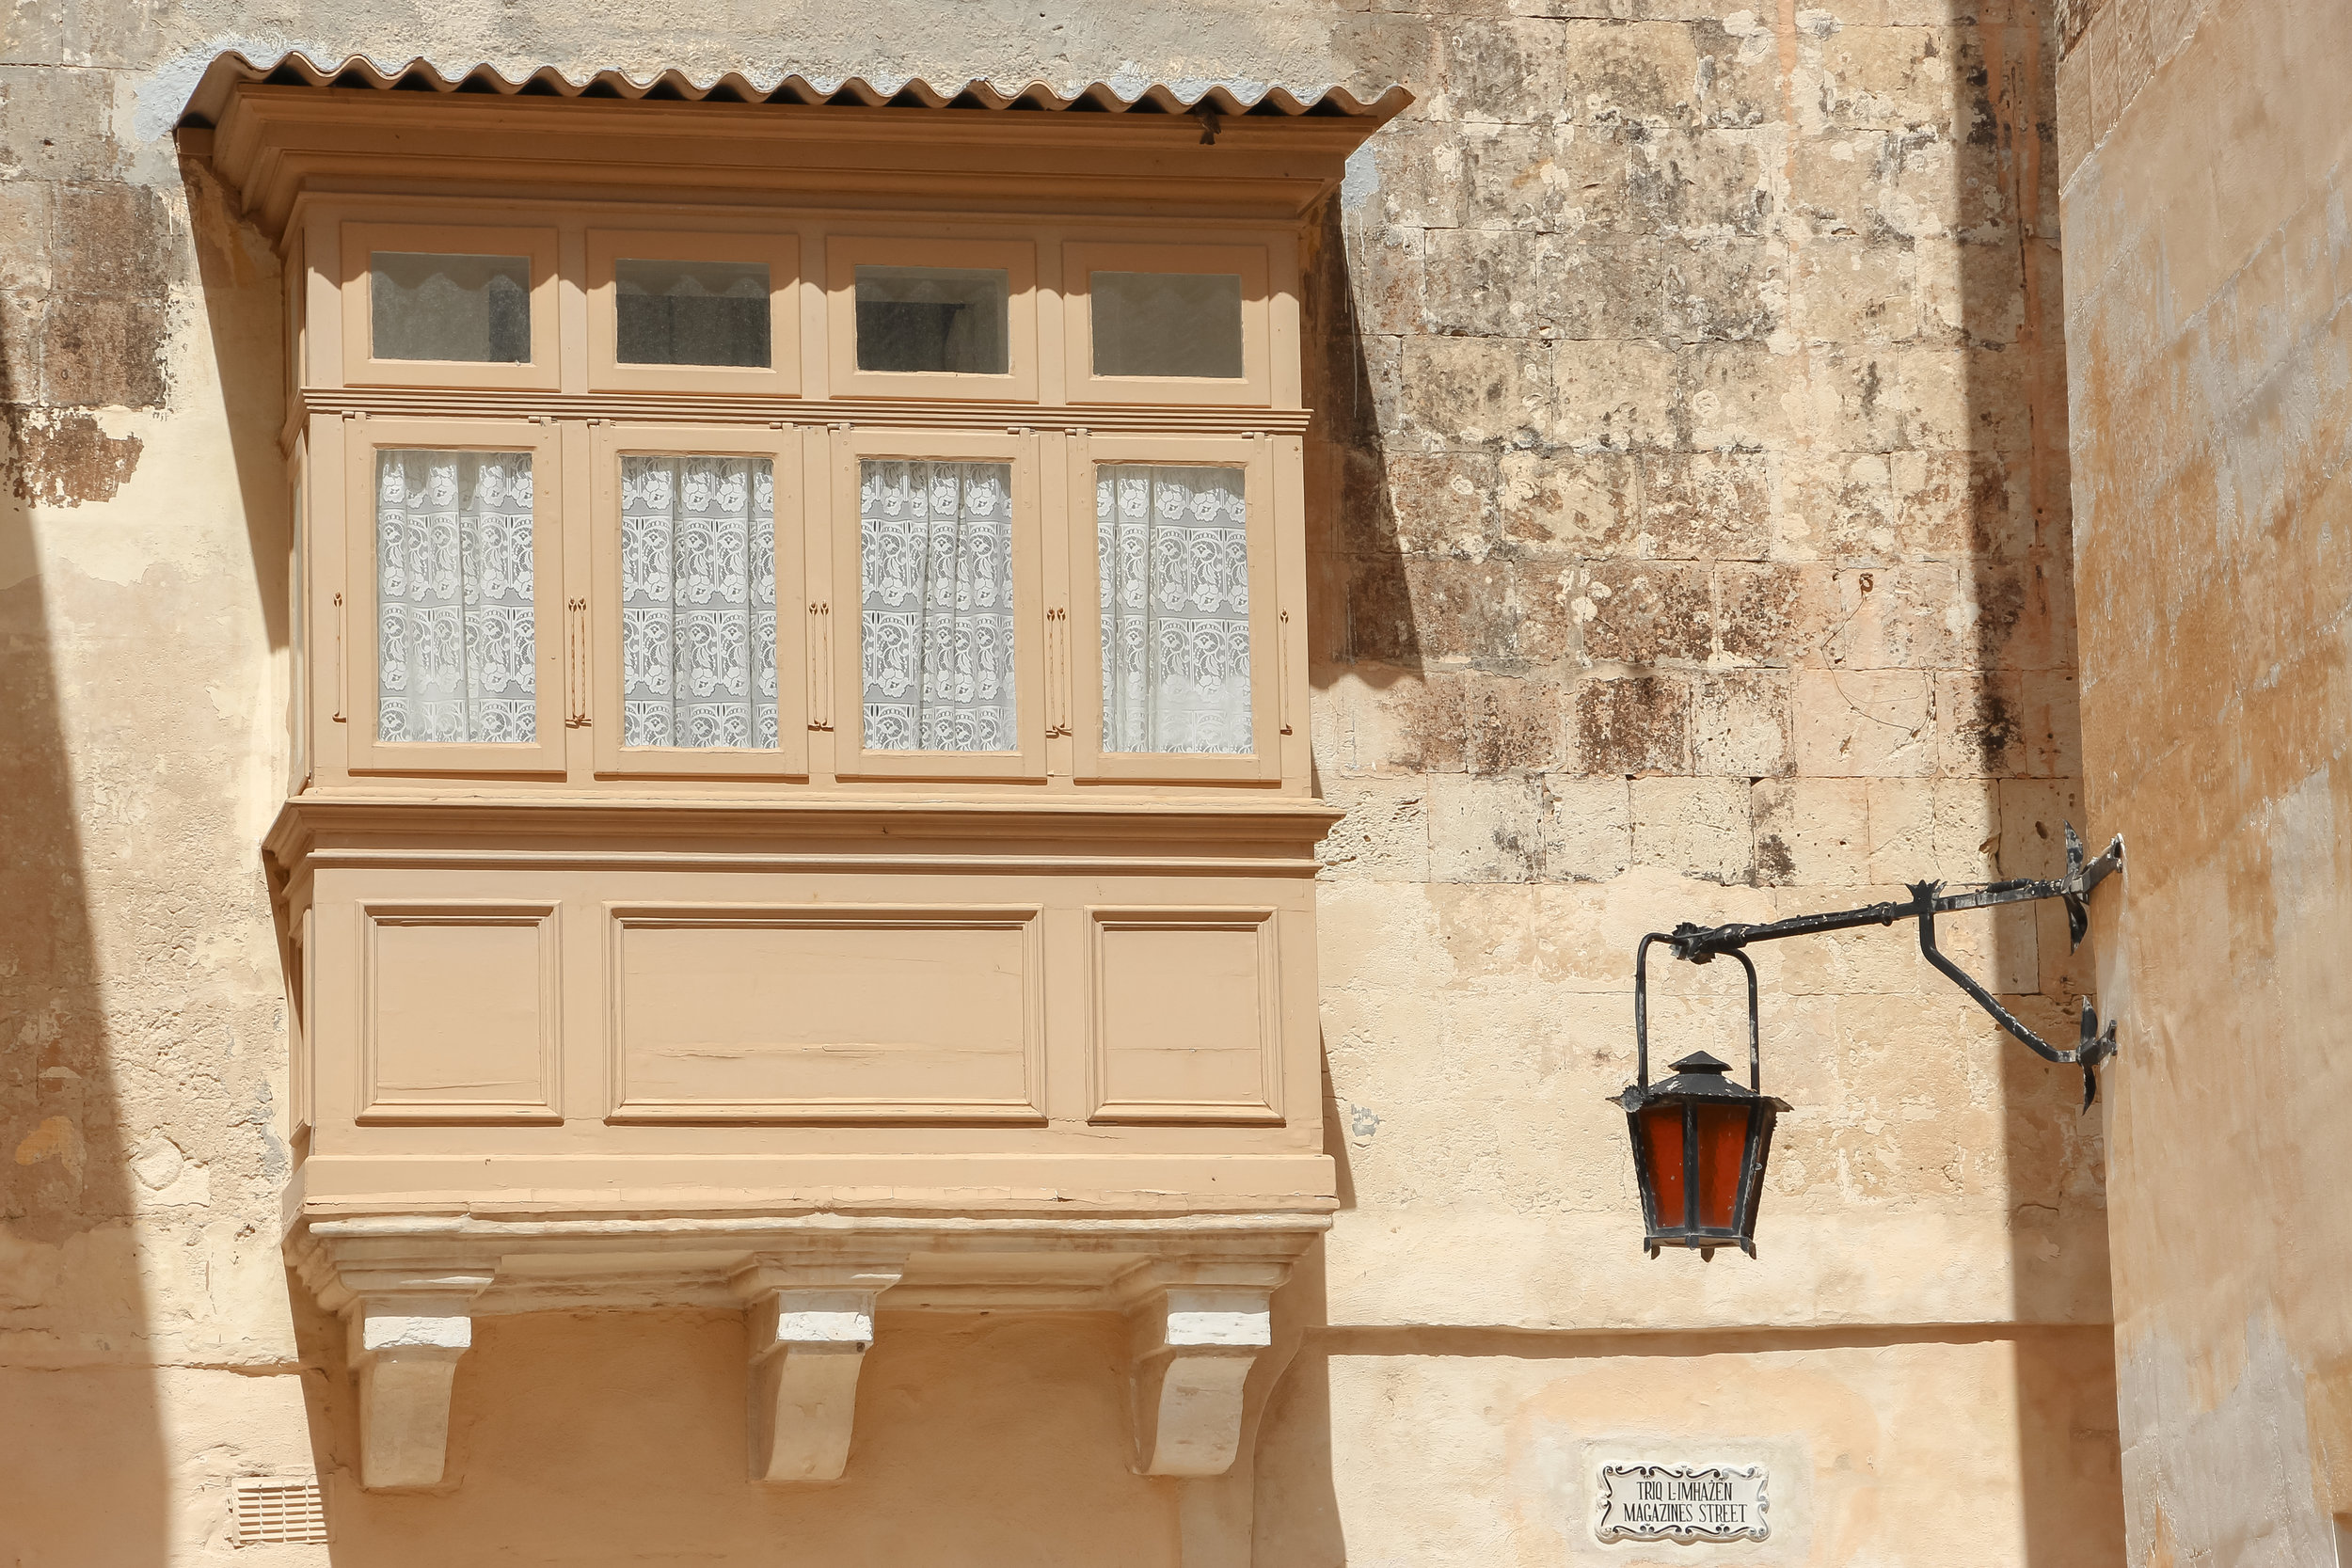 Streets of Malta | Traditional Enclosed Wooden Balcony, Maltese window, Street Light | Mdina | - Thinking About Appreciation For Quality In Malta | Malta, Europe | DoLessGetMoreDone.com | - Canon Minimal Travel Documentary Photography - search for Liveability | Sustainability